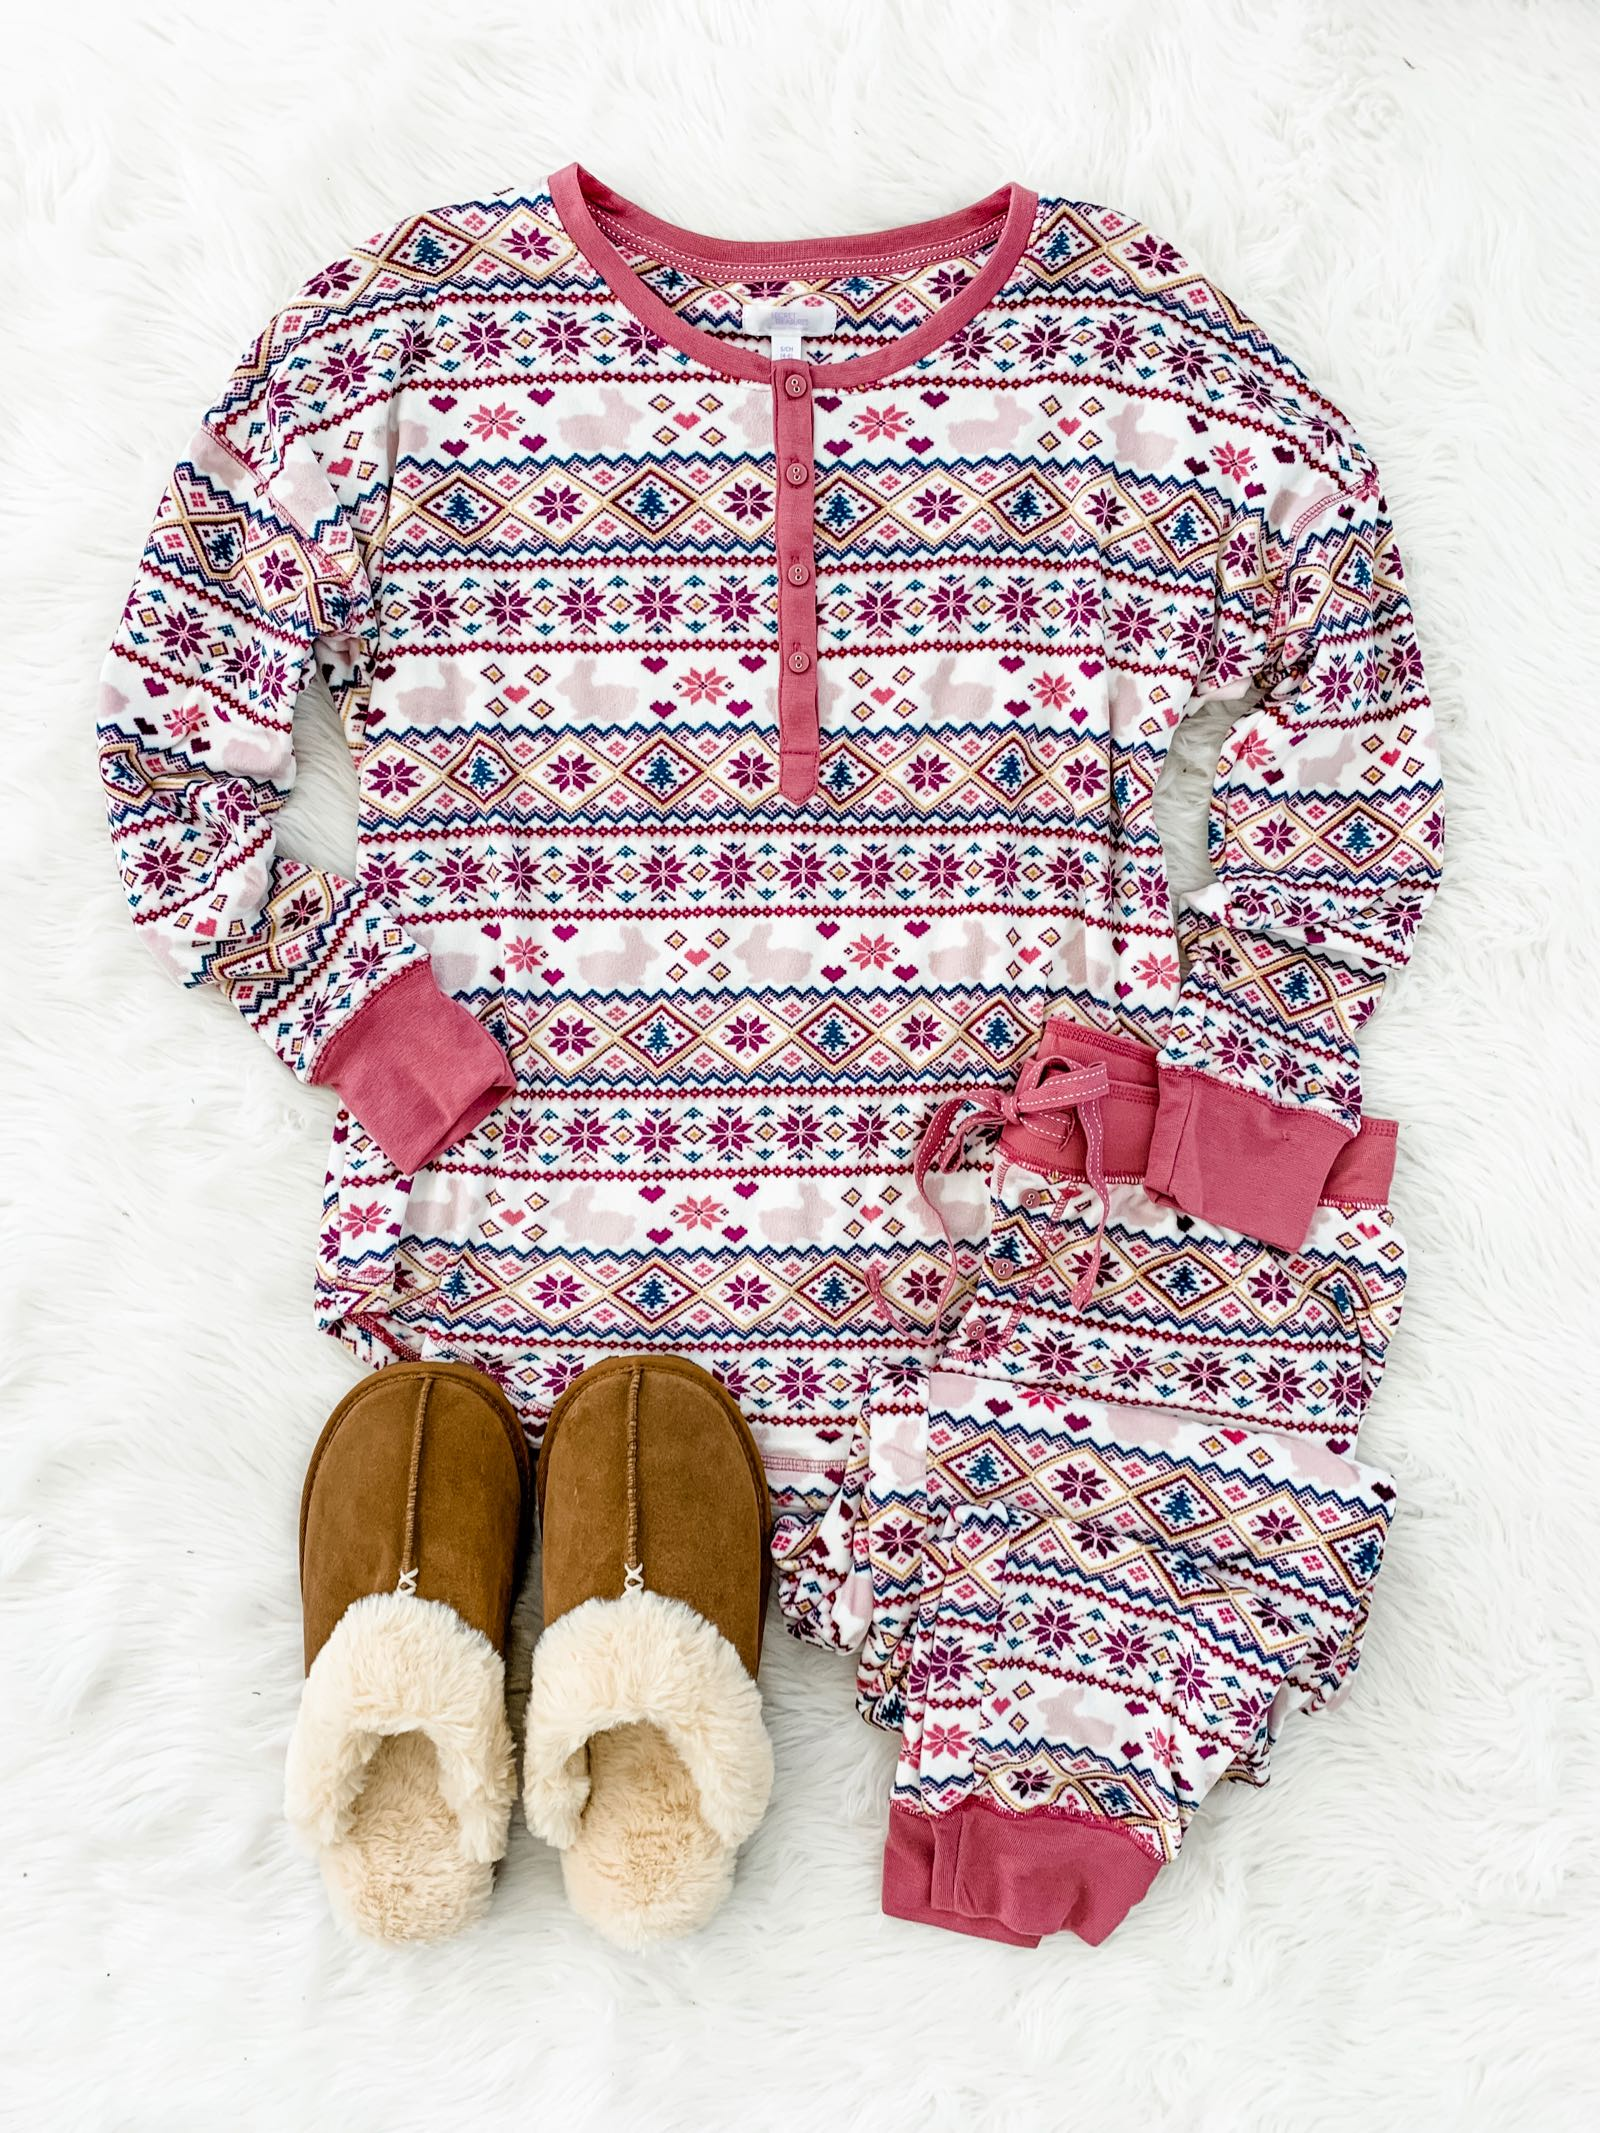 Cutest fair isle pajamas for $20 and Ugg dupes for $13!